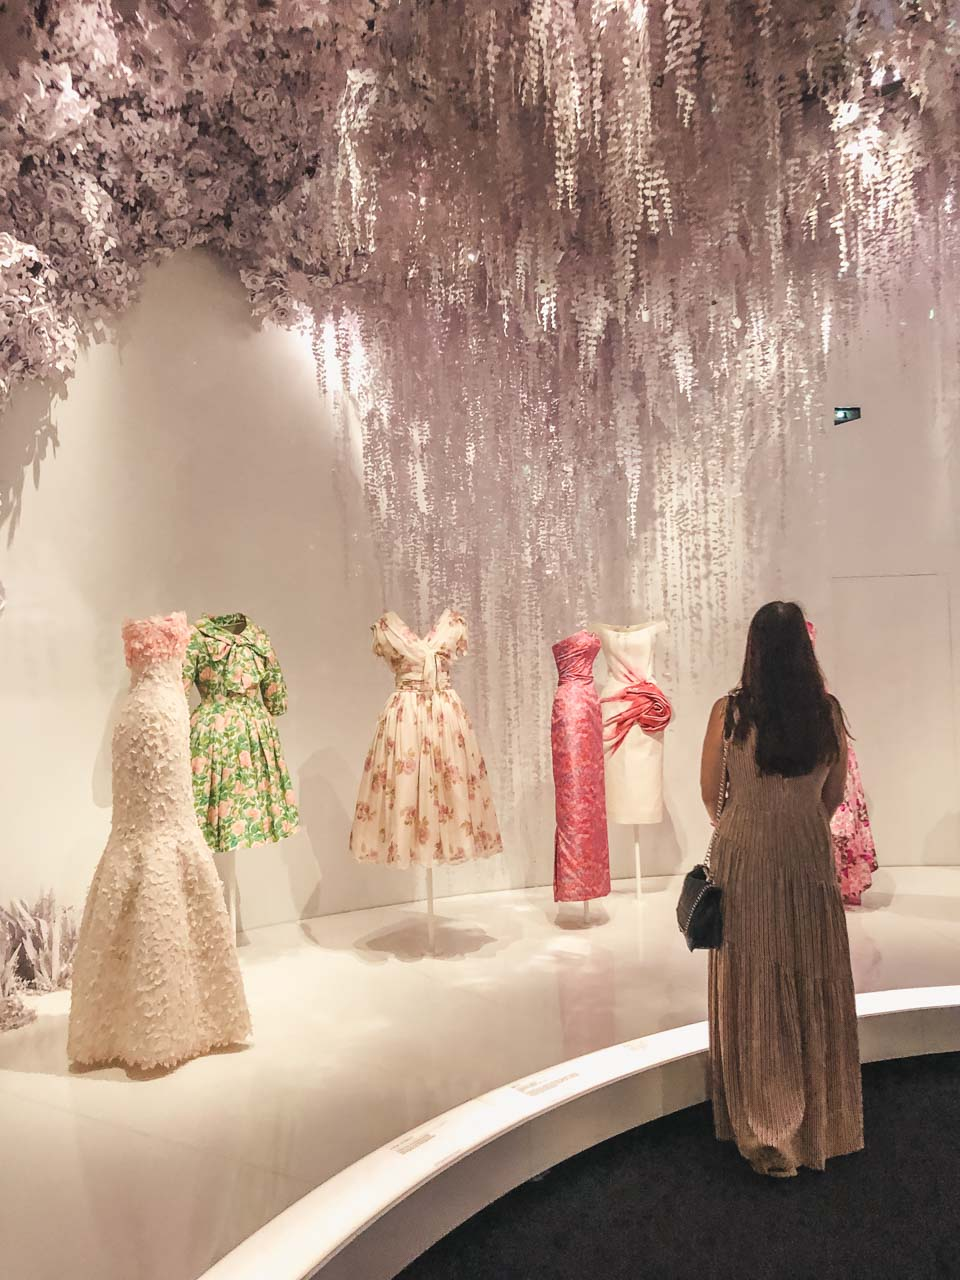 A girl standing in the garden room of the Dior exhibition at the Victoria and Albert Museum in London, looking at dresses